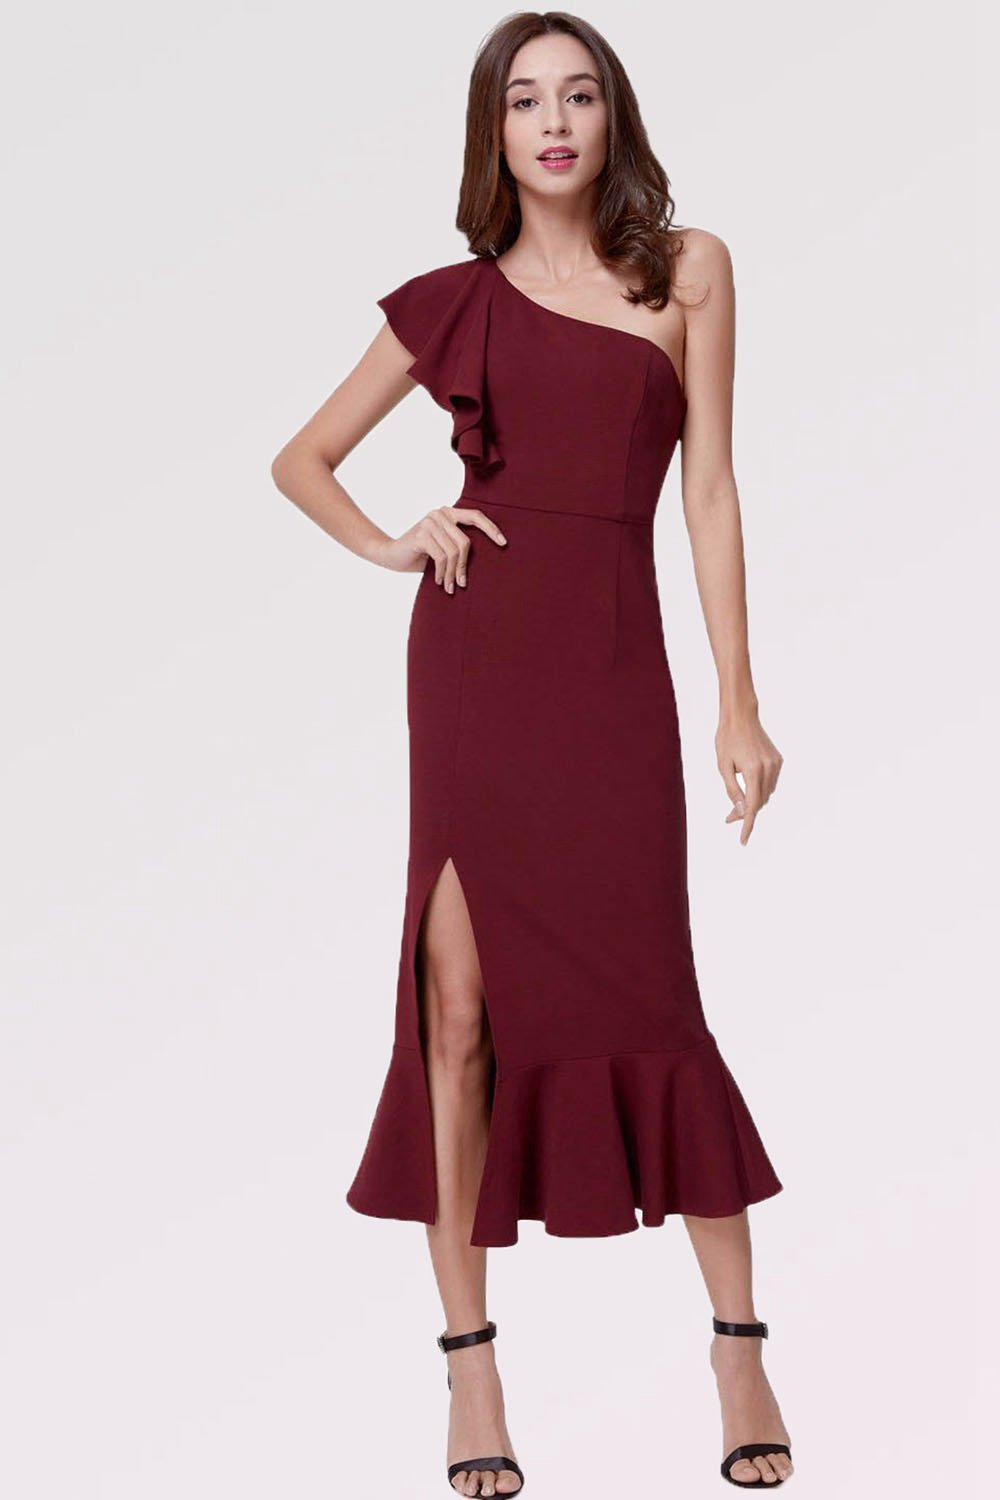 Where to find Bridesmaid Dresses Online